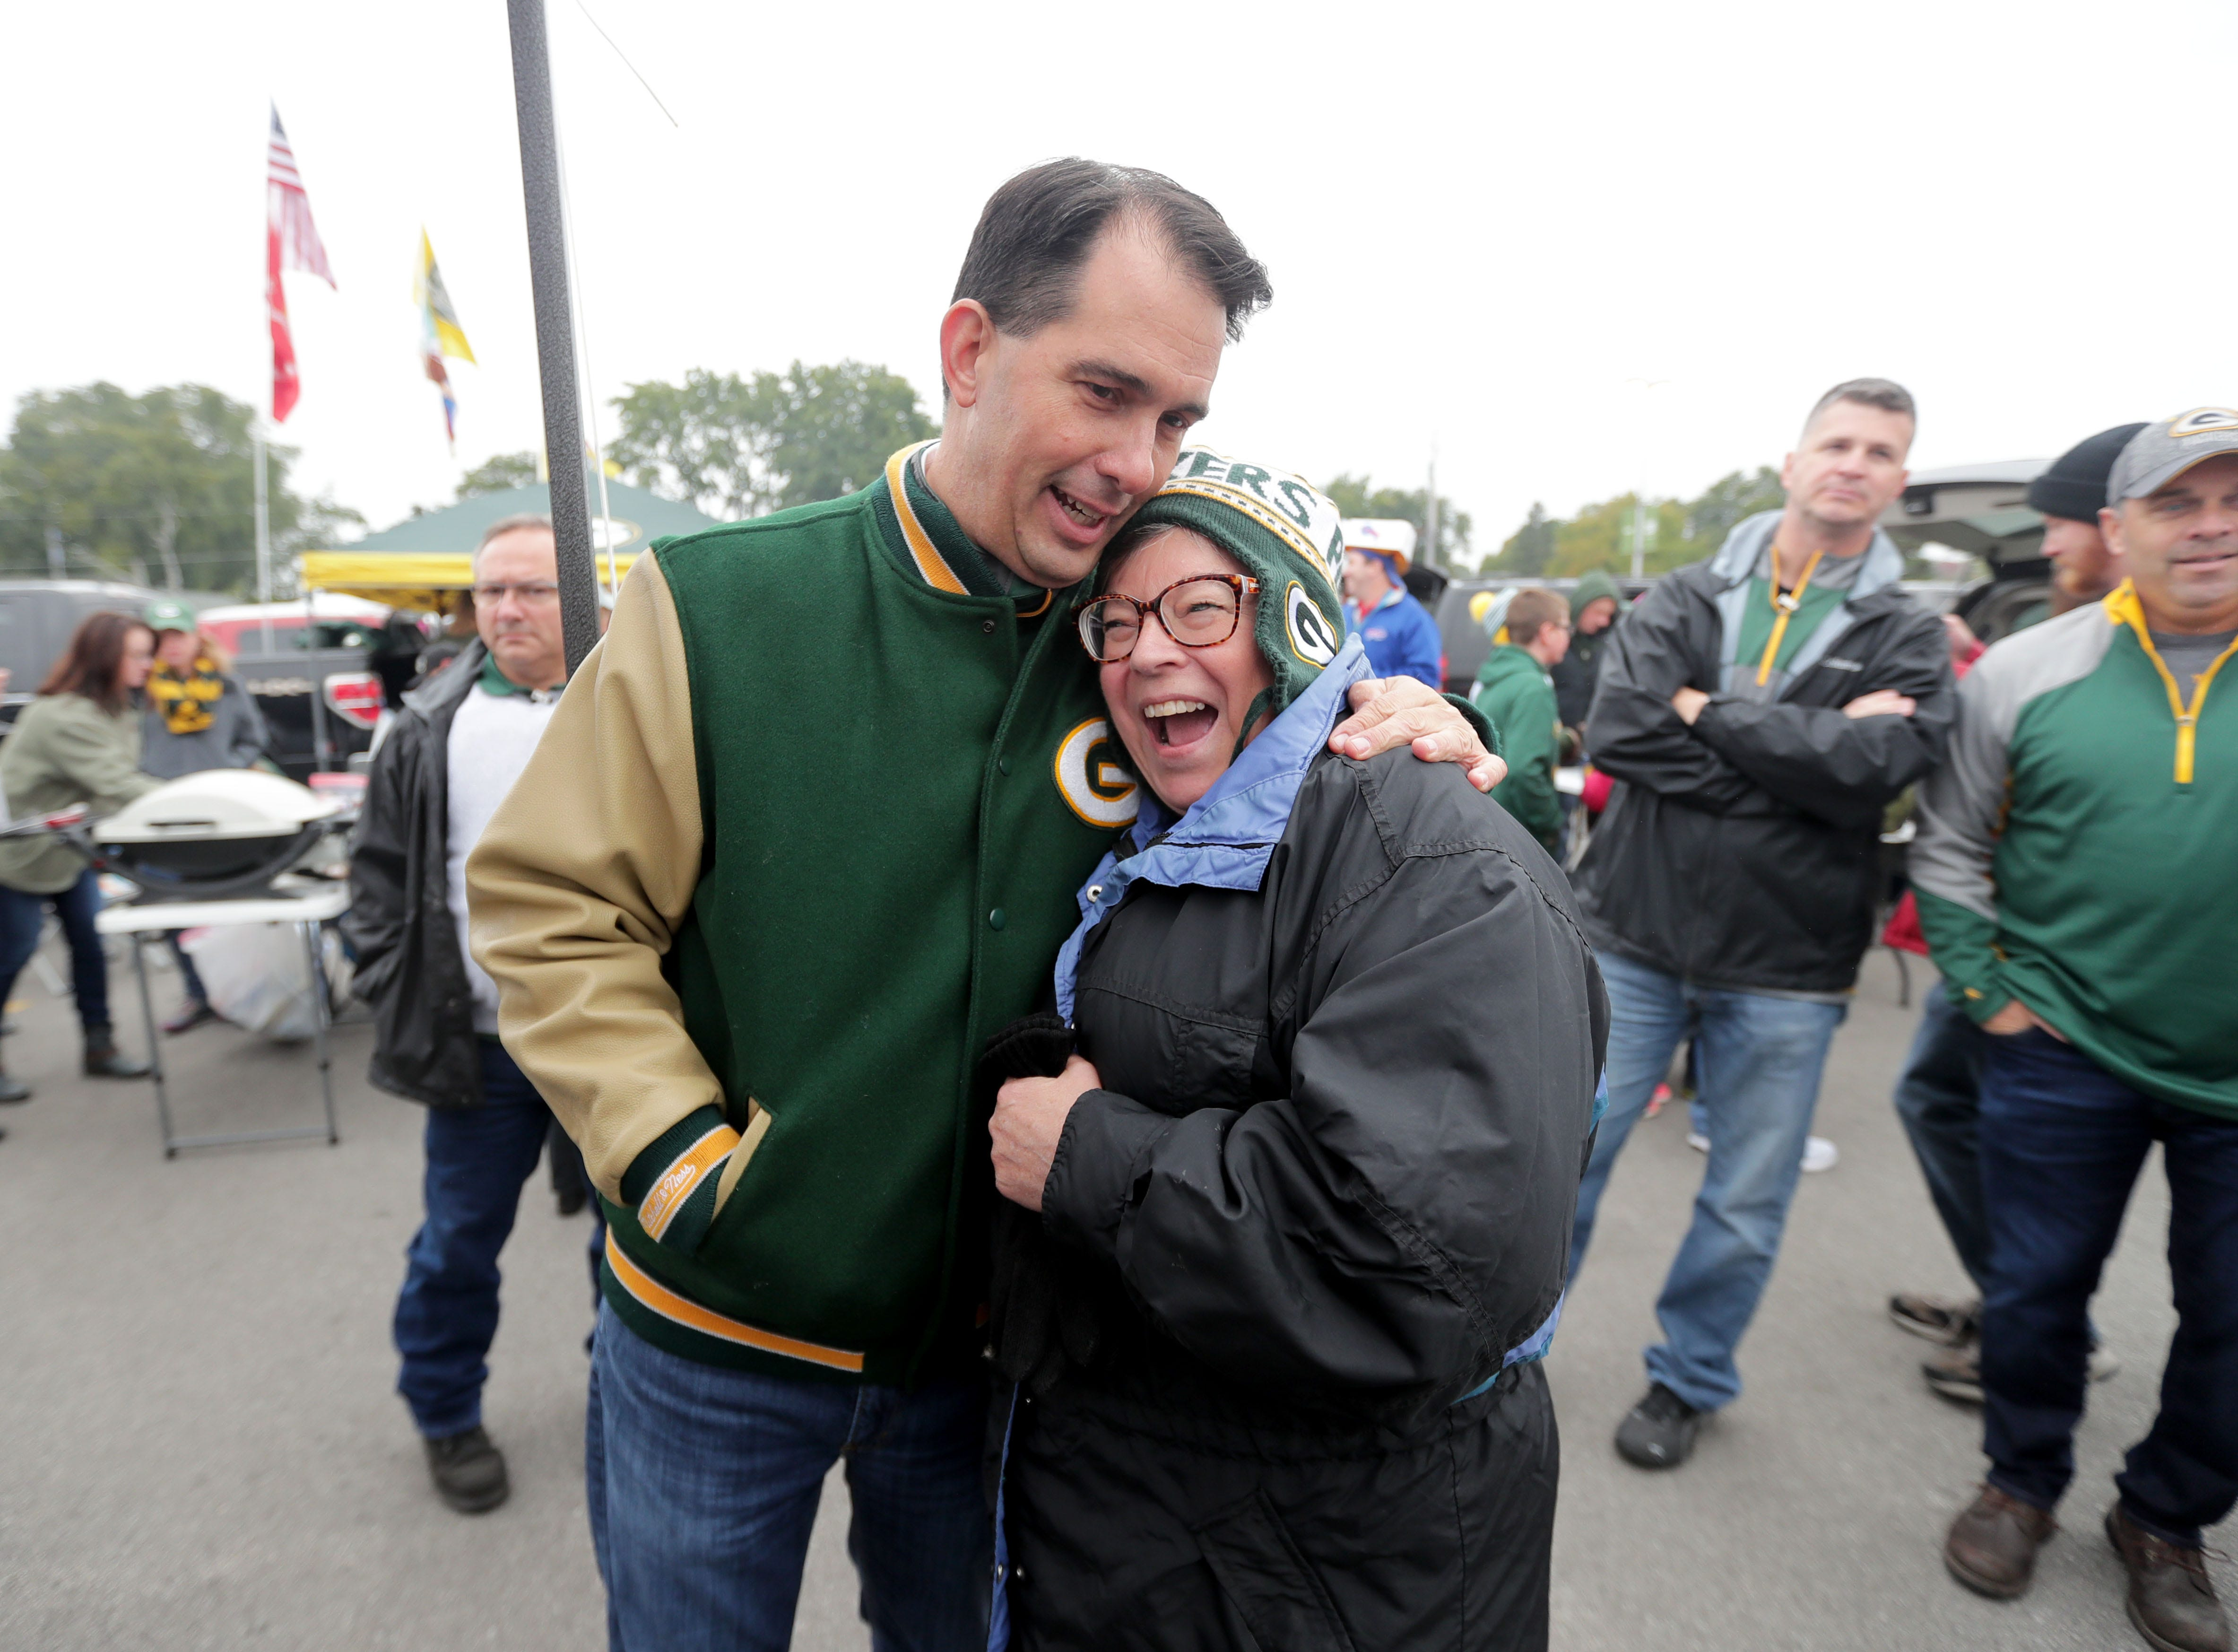 Gov. Scott Walker interacts with Mary Zimmerman of Green Bay before the Green Bay Packers game against the Buffalo Bills at Lambeau Field in Green Bay, Wis. on Sunday, September 30, 2018.